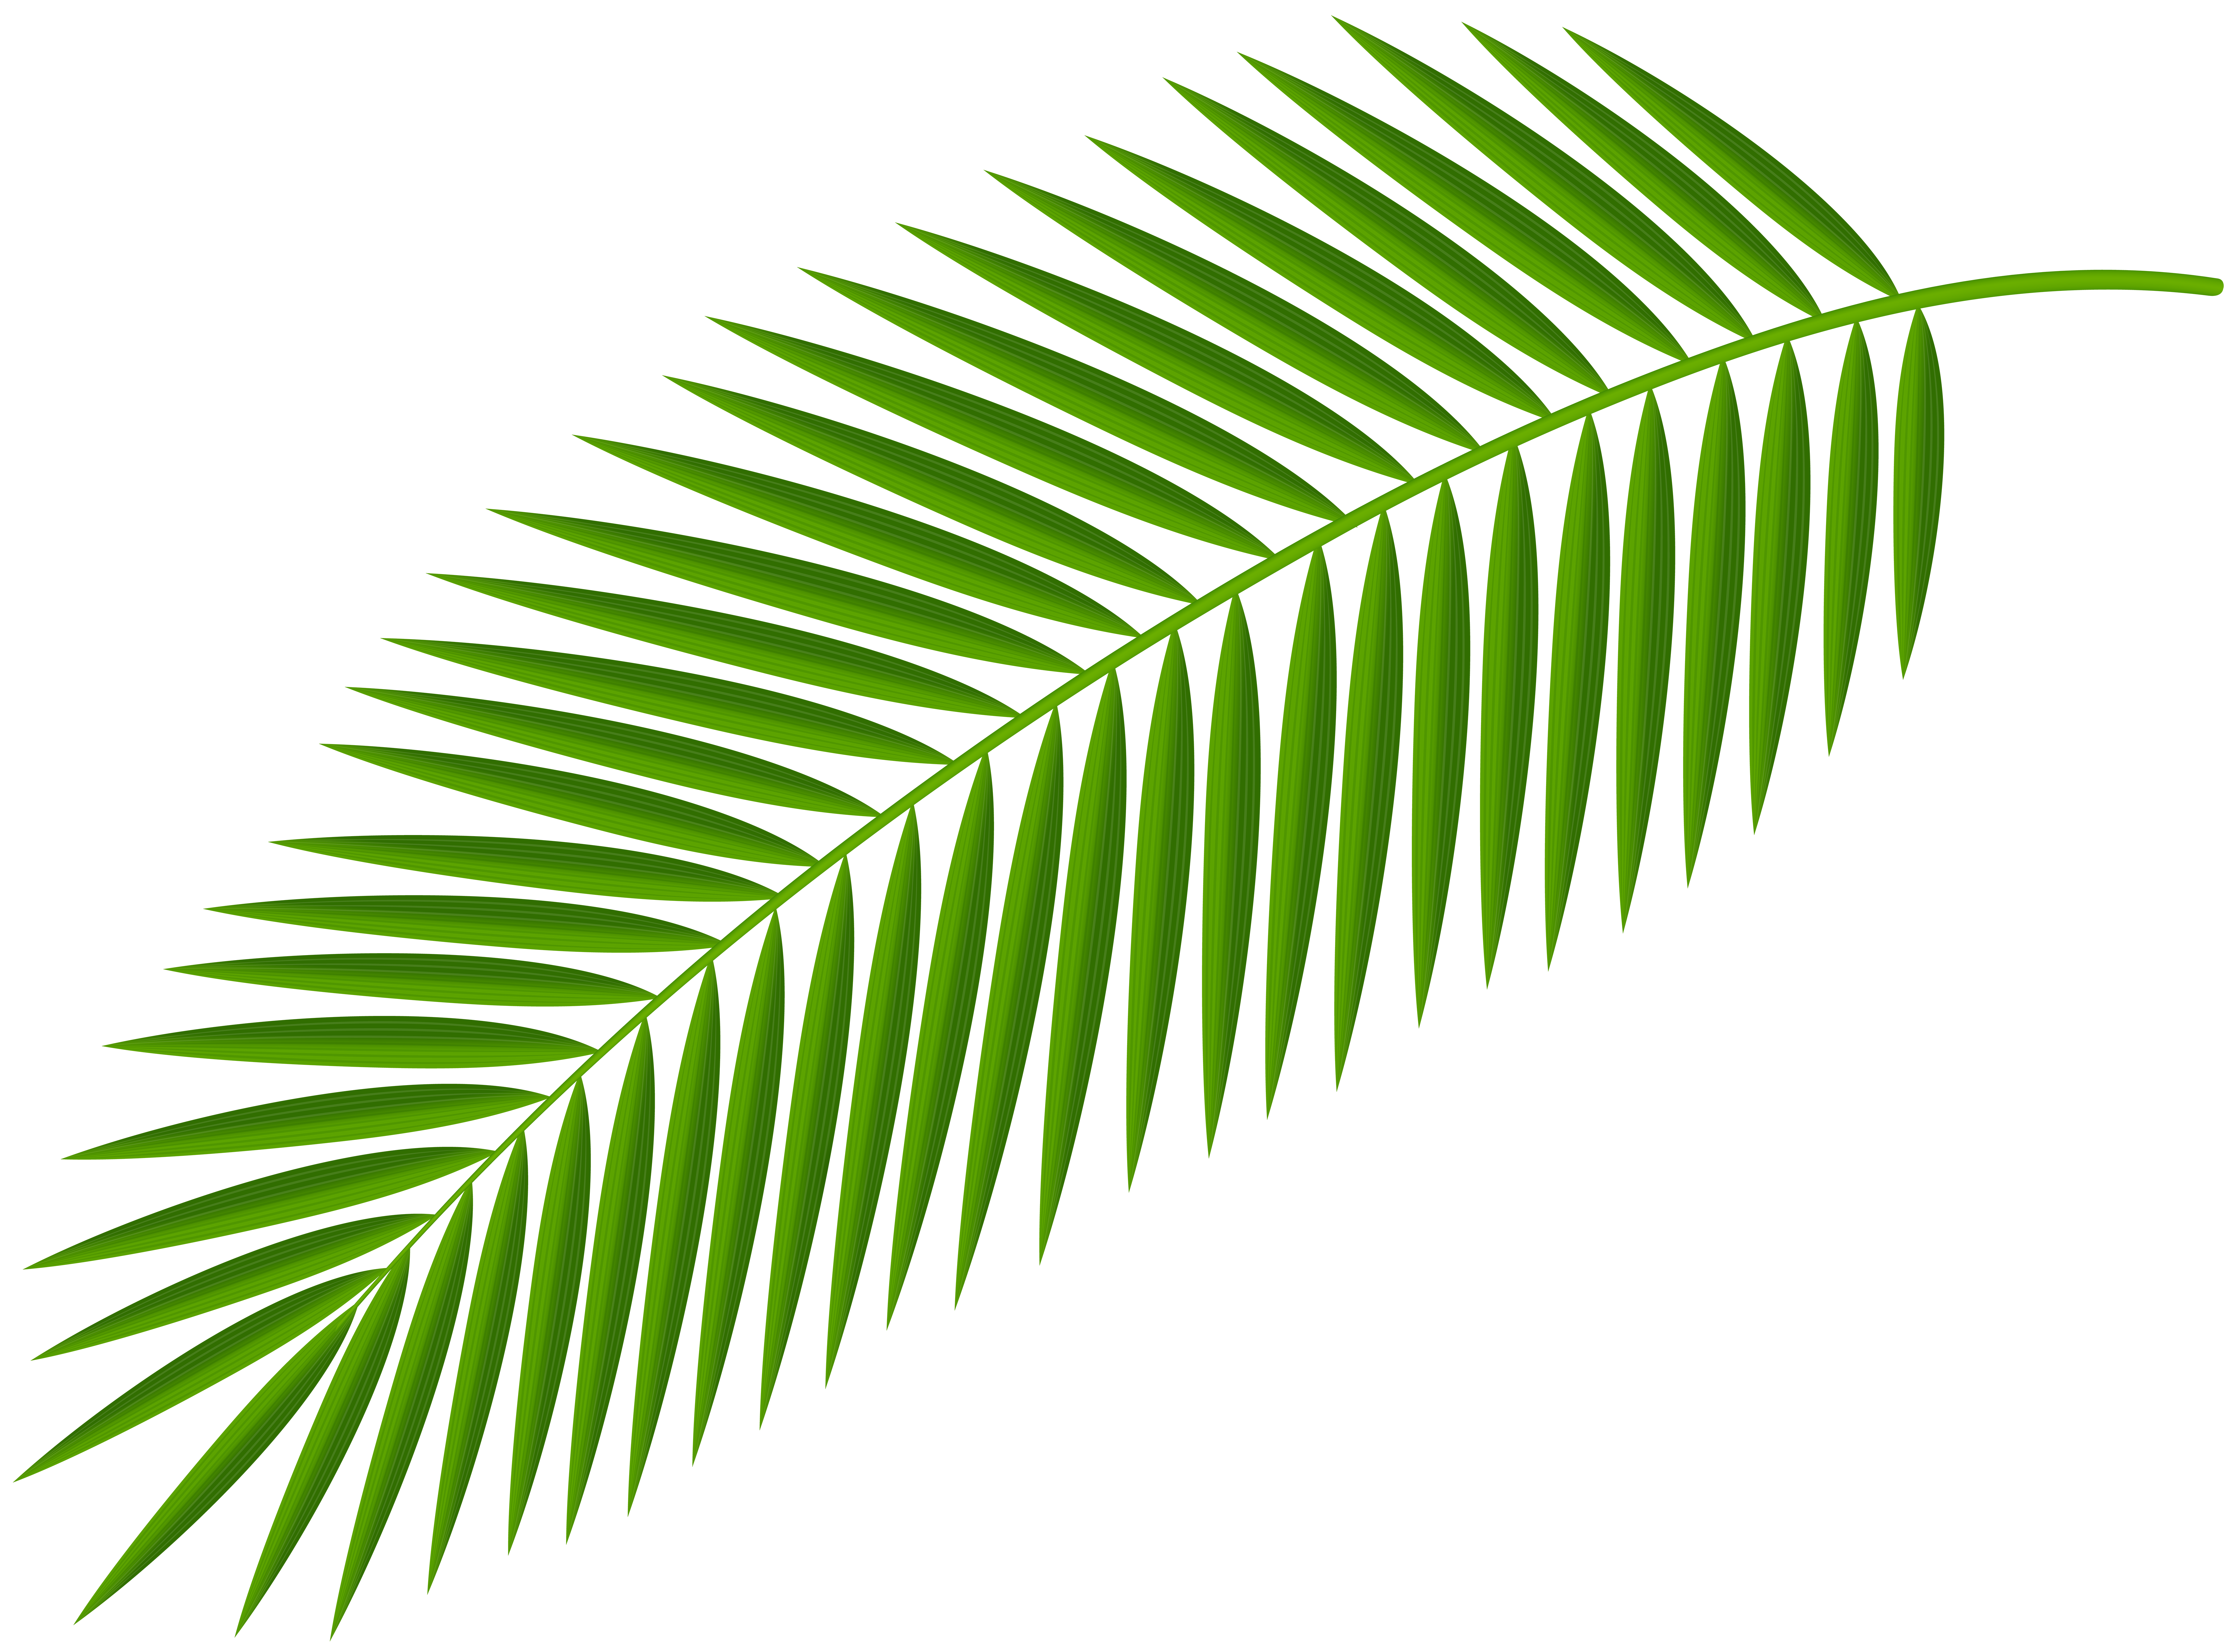 Palm Branch Transparent Clip Art Image.